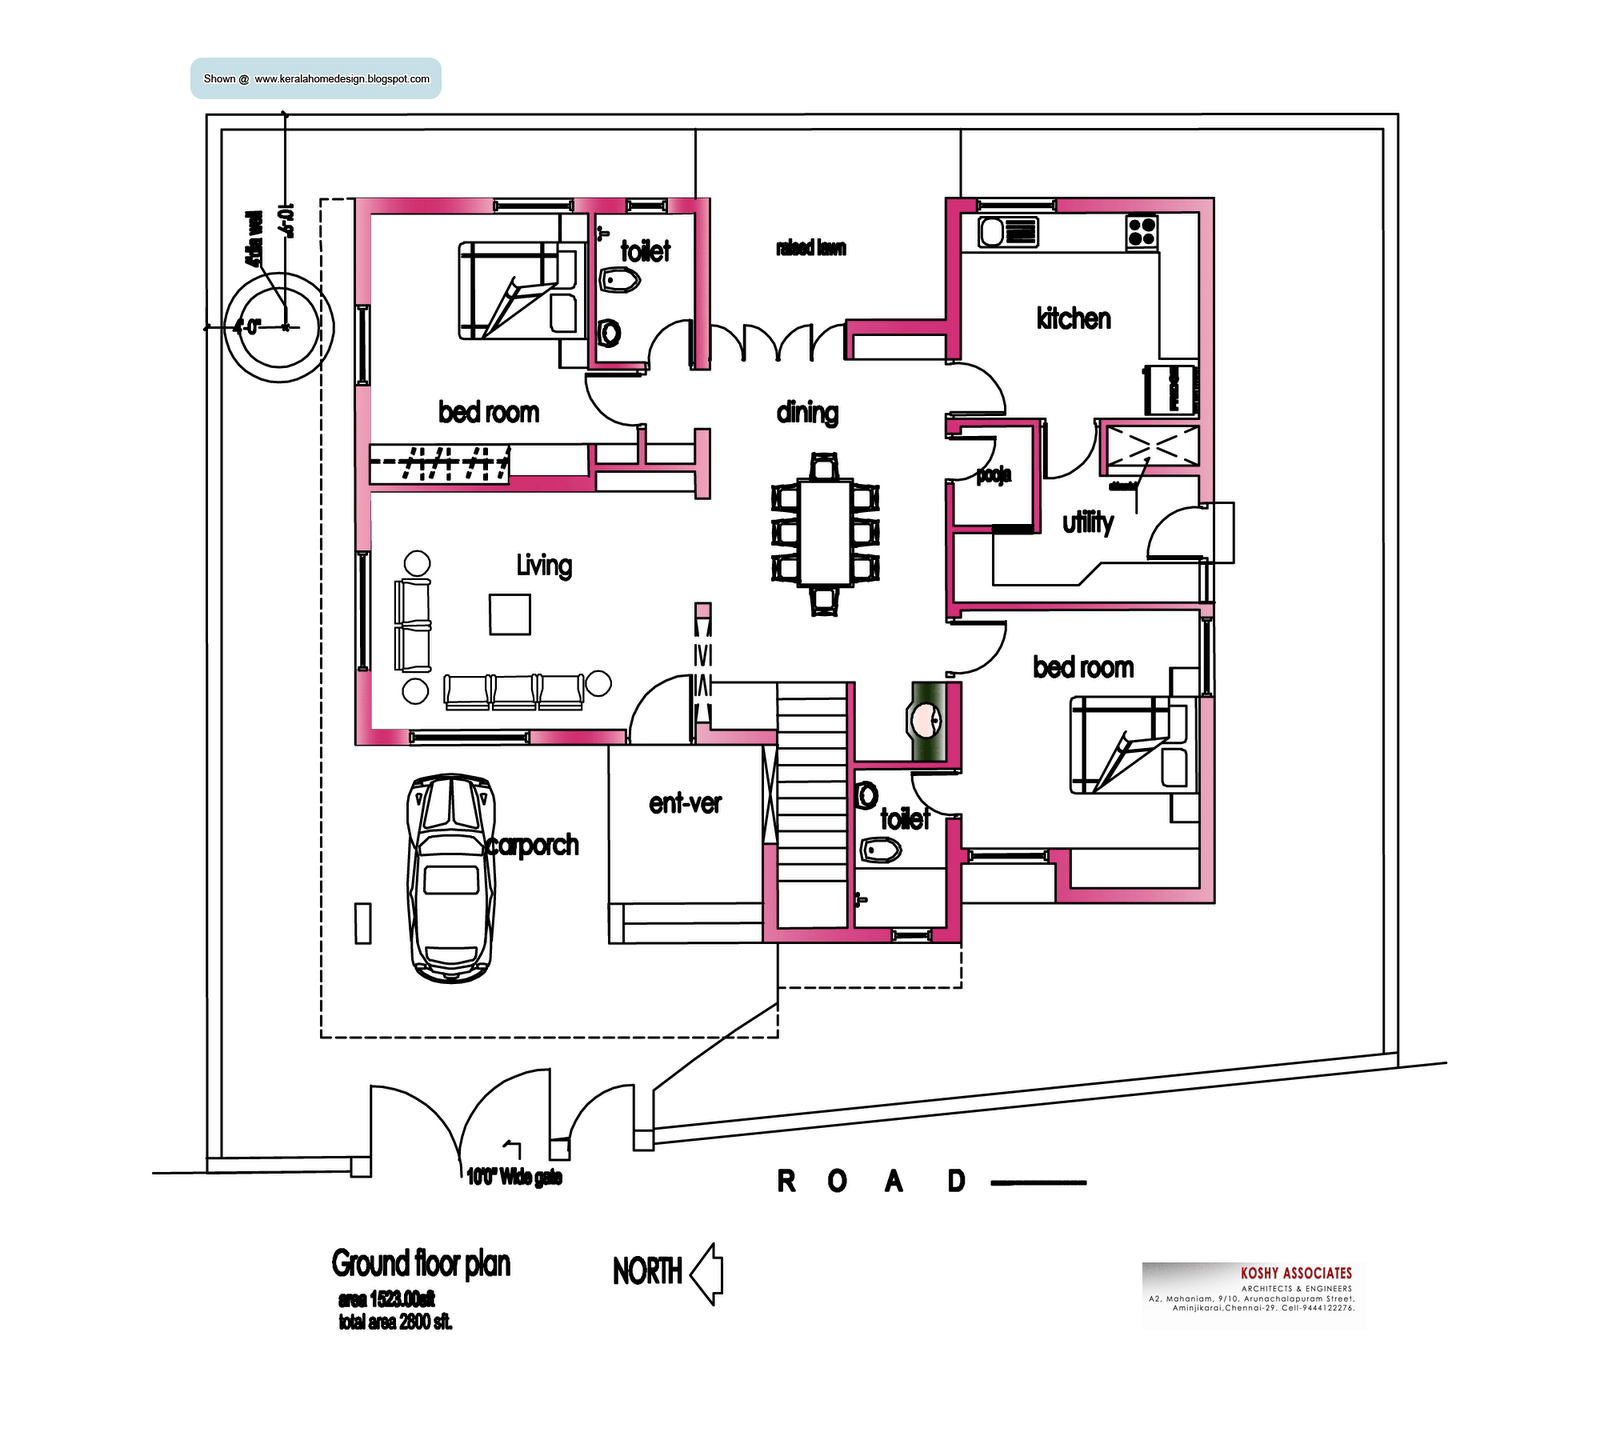 Image detail for modern house plan 2800 sq ft kerala for House plans by design